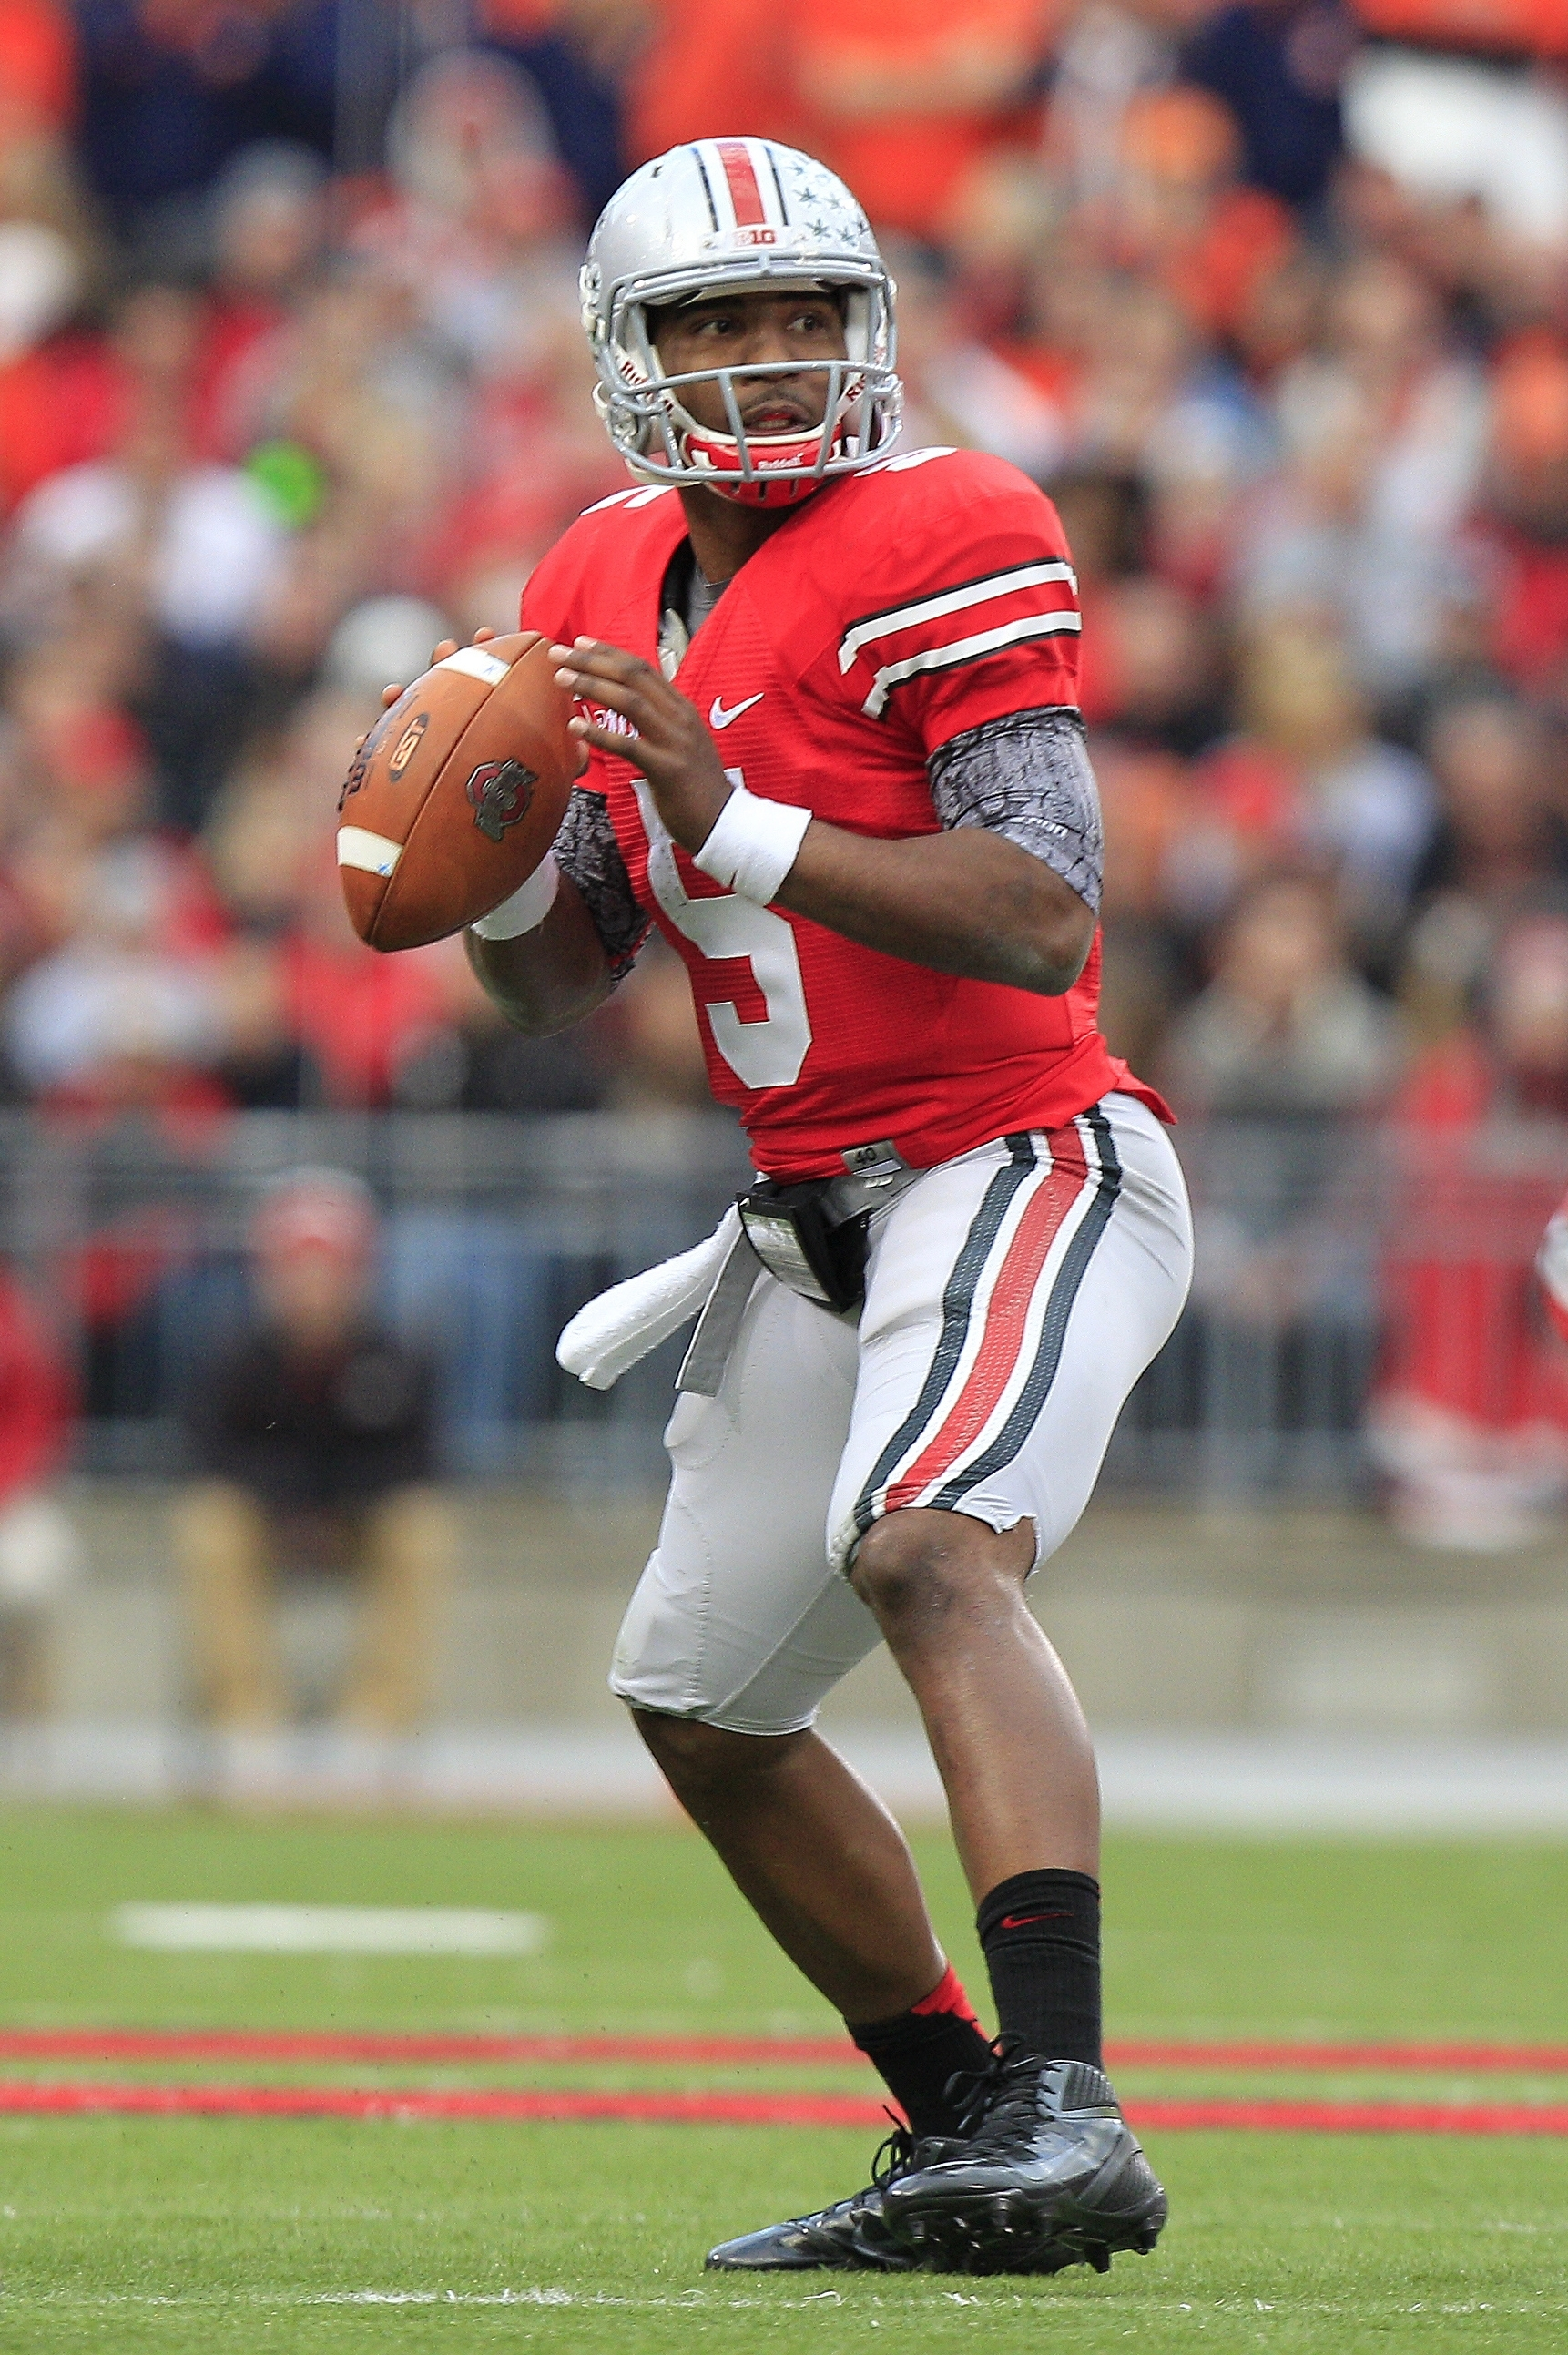 FILE- In this Nov. 3, 2012, file photo, Ohio State quarterback Braxton Miller prepares to throw against Illinois during an NCAA college football game in Columbus, Ohio. Heading into Saturdayís 2013 season opener against Buffalo, Miller is confident and comfortable, surrounded by solid players and assured that this will be a special year. (AP Photo/Jay LaPrete, File)